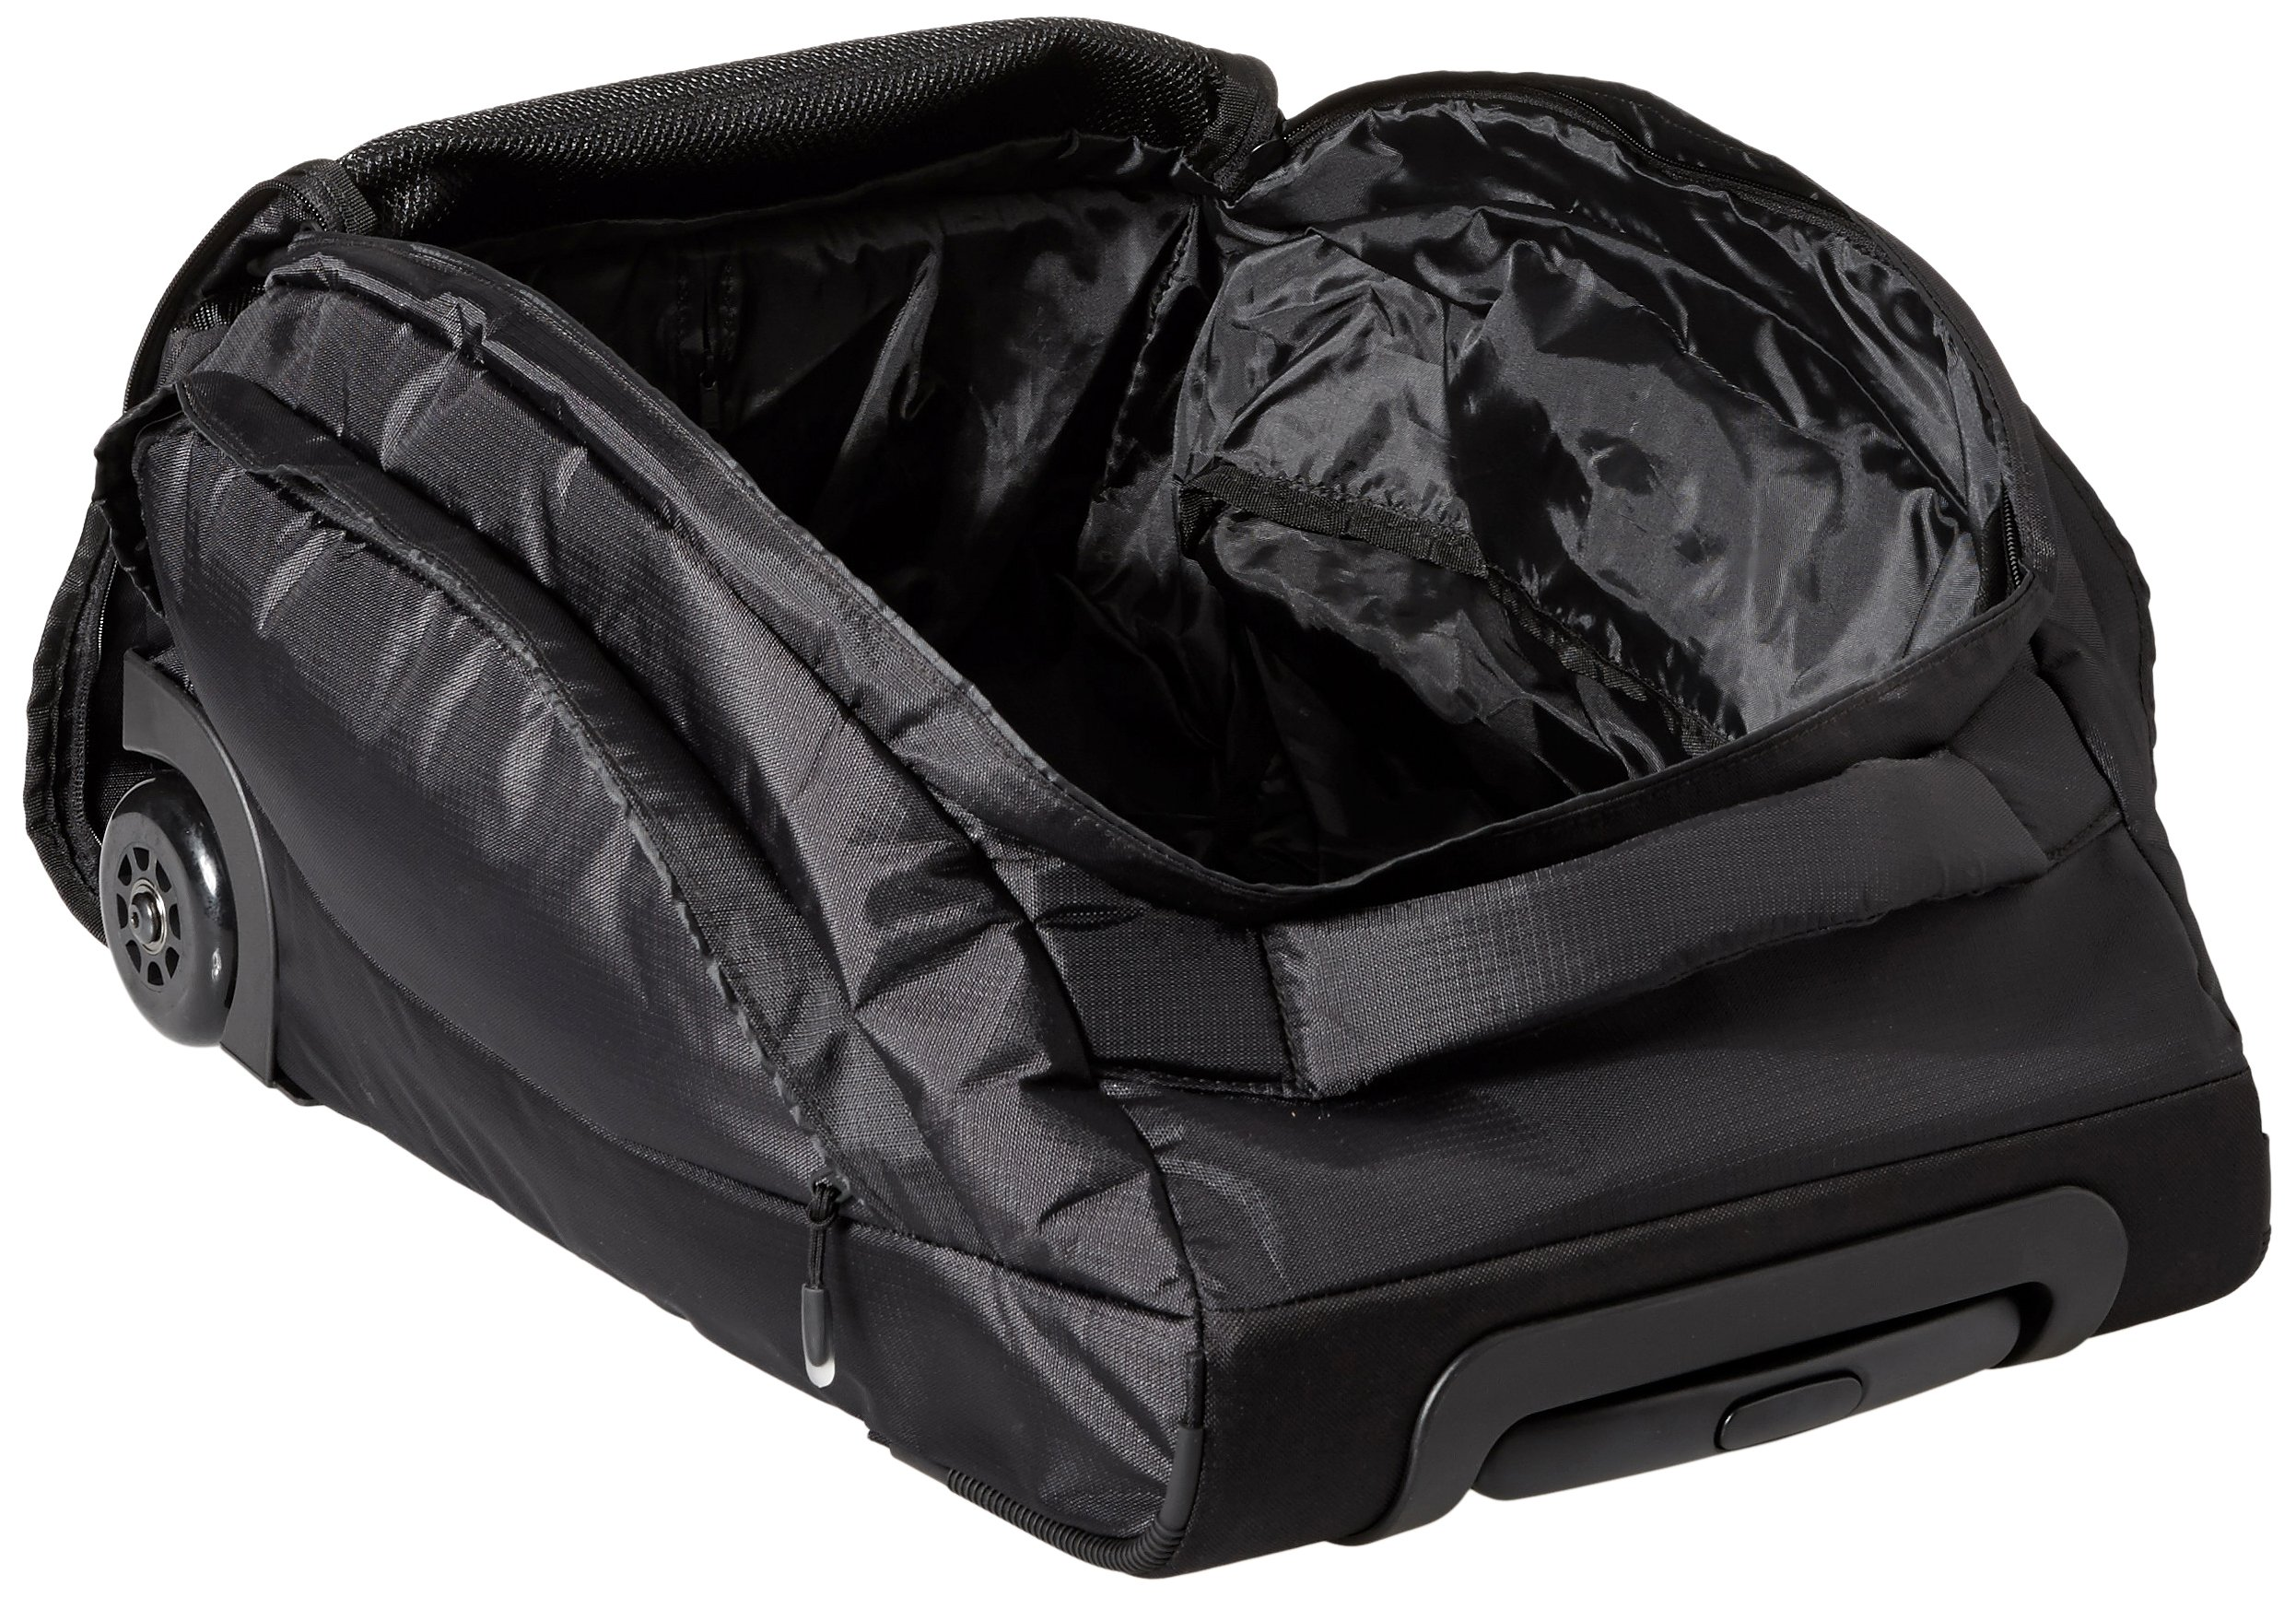 adidas Duel 21-Inch Wheel Bag, Black, One Size by adidas (Image #7)